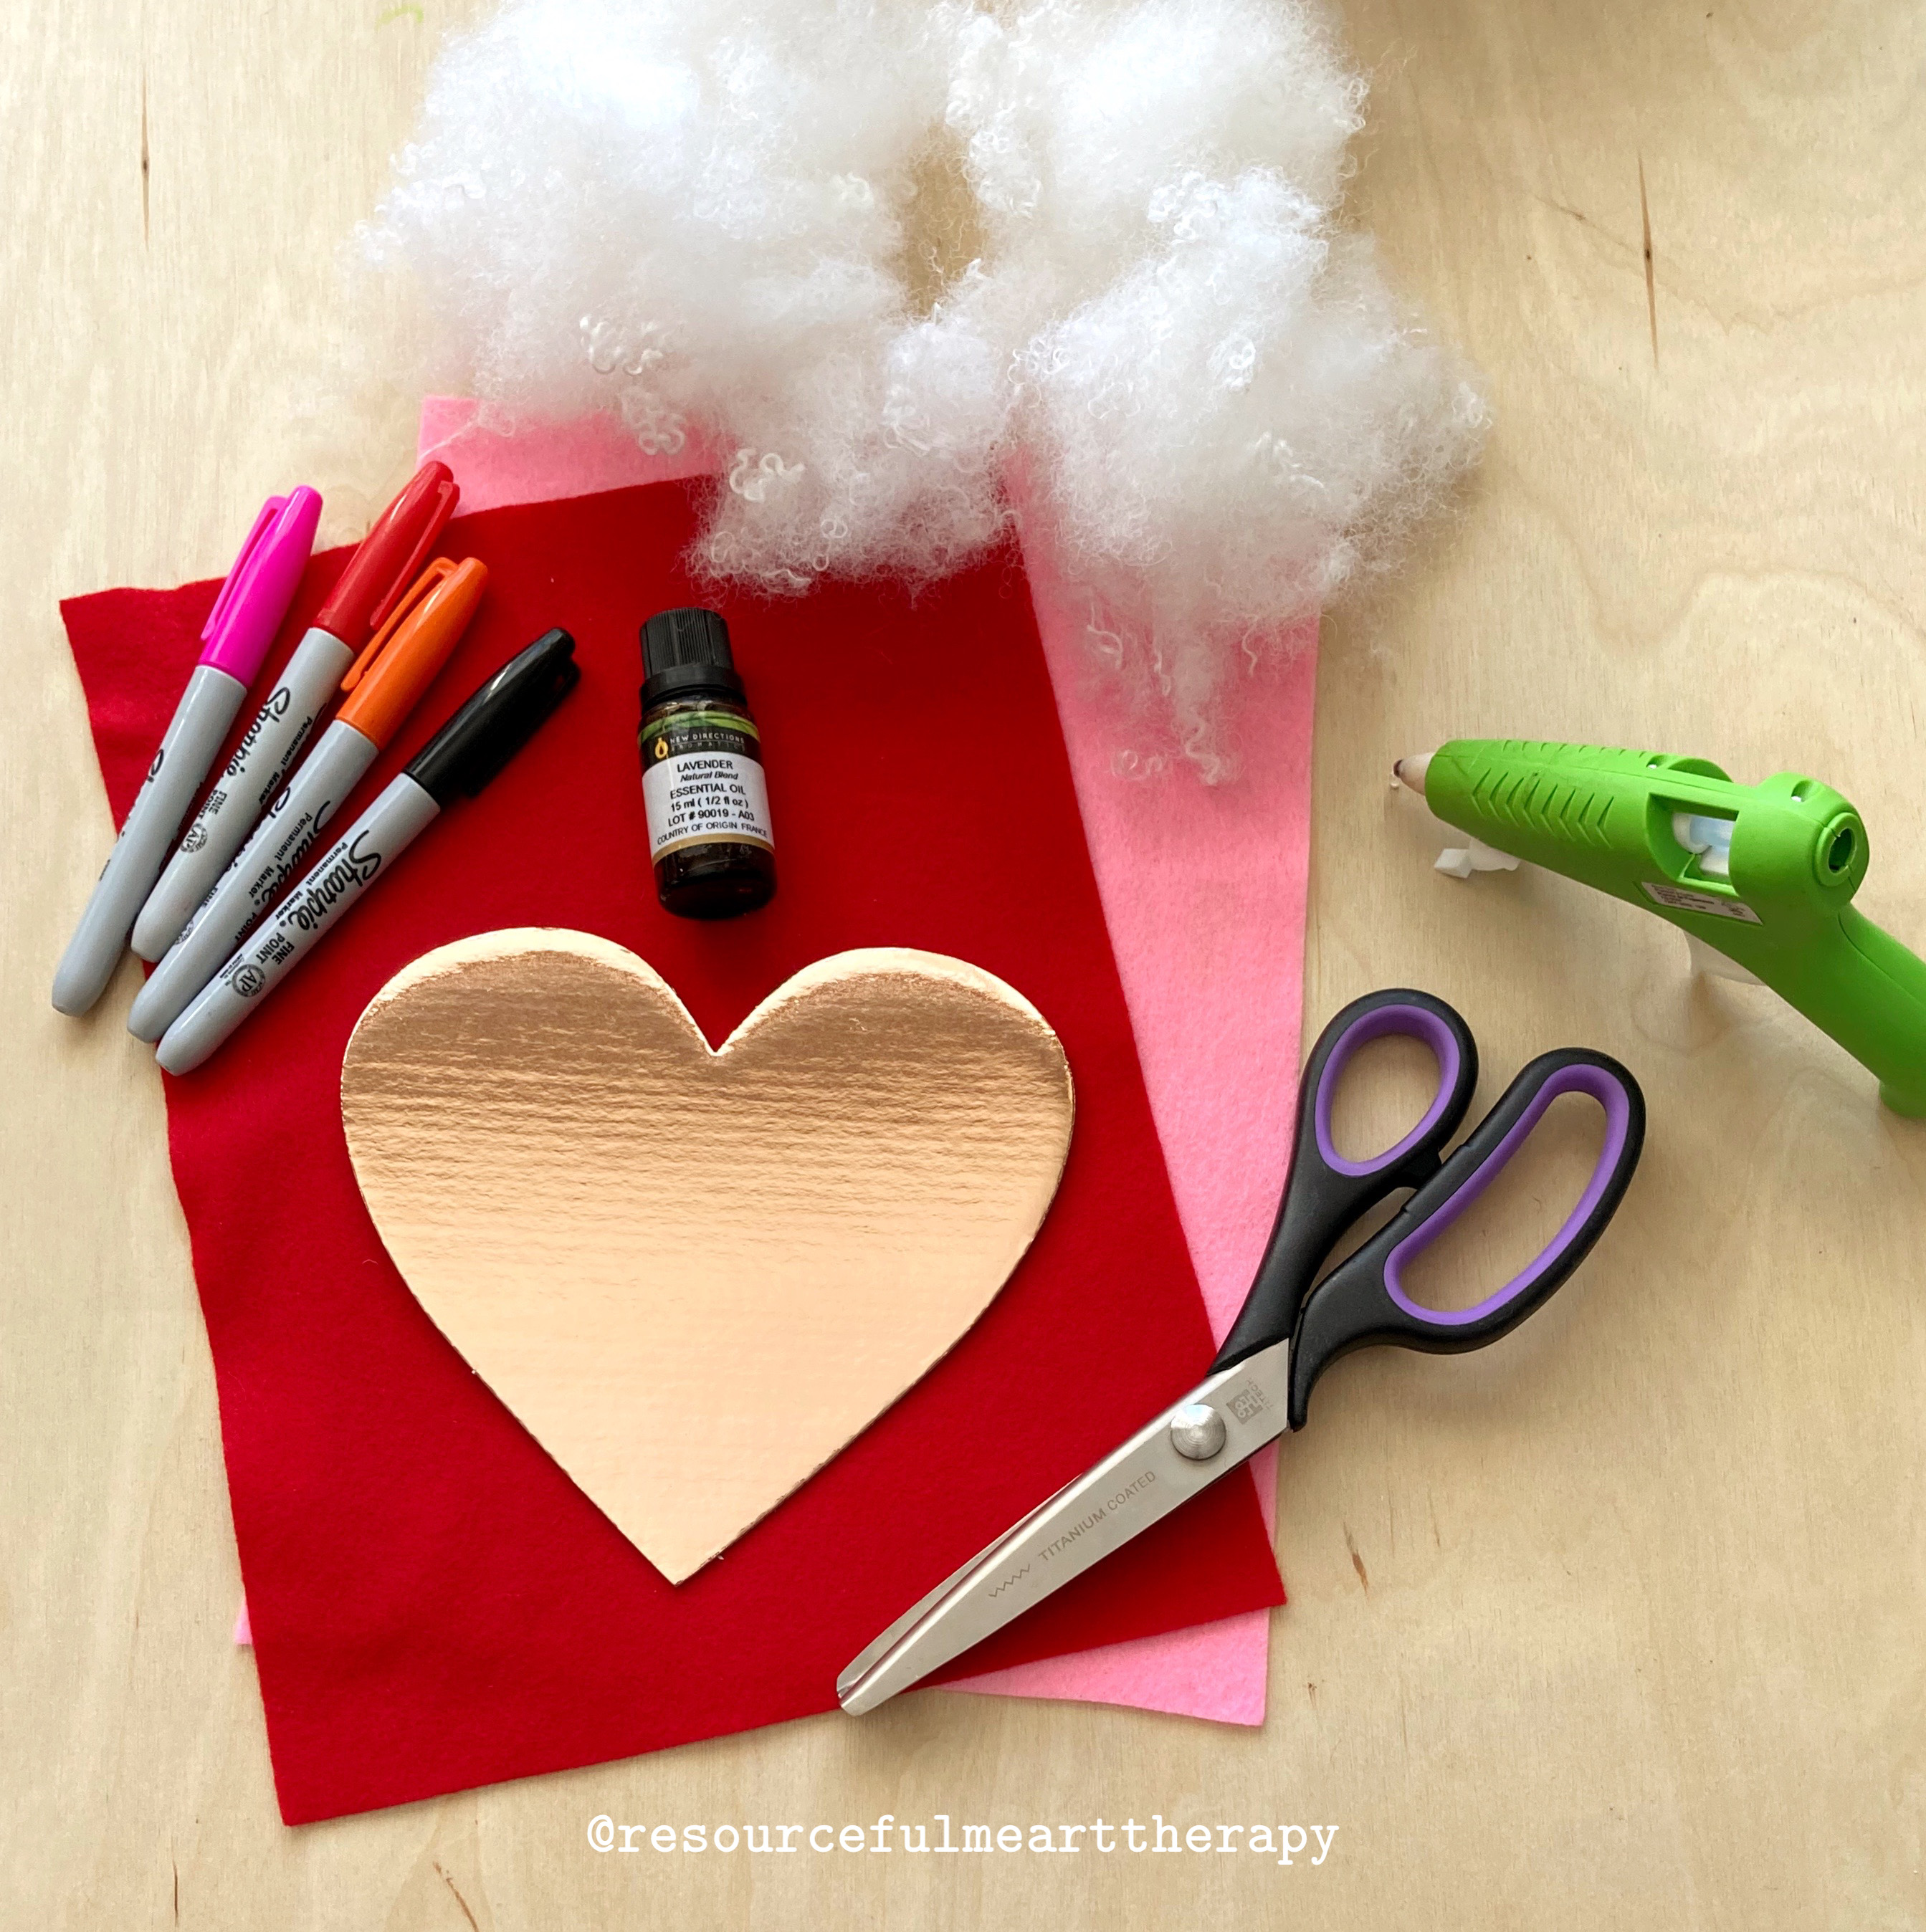 Photo of felt, cardboard heart, scissors, stuffing, hot glue gun, sharpies, and lavender essential oil.